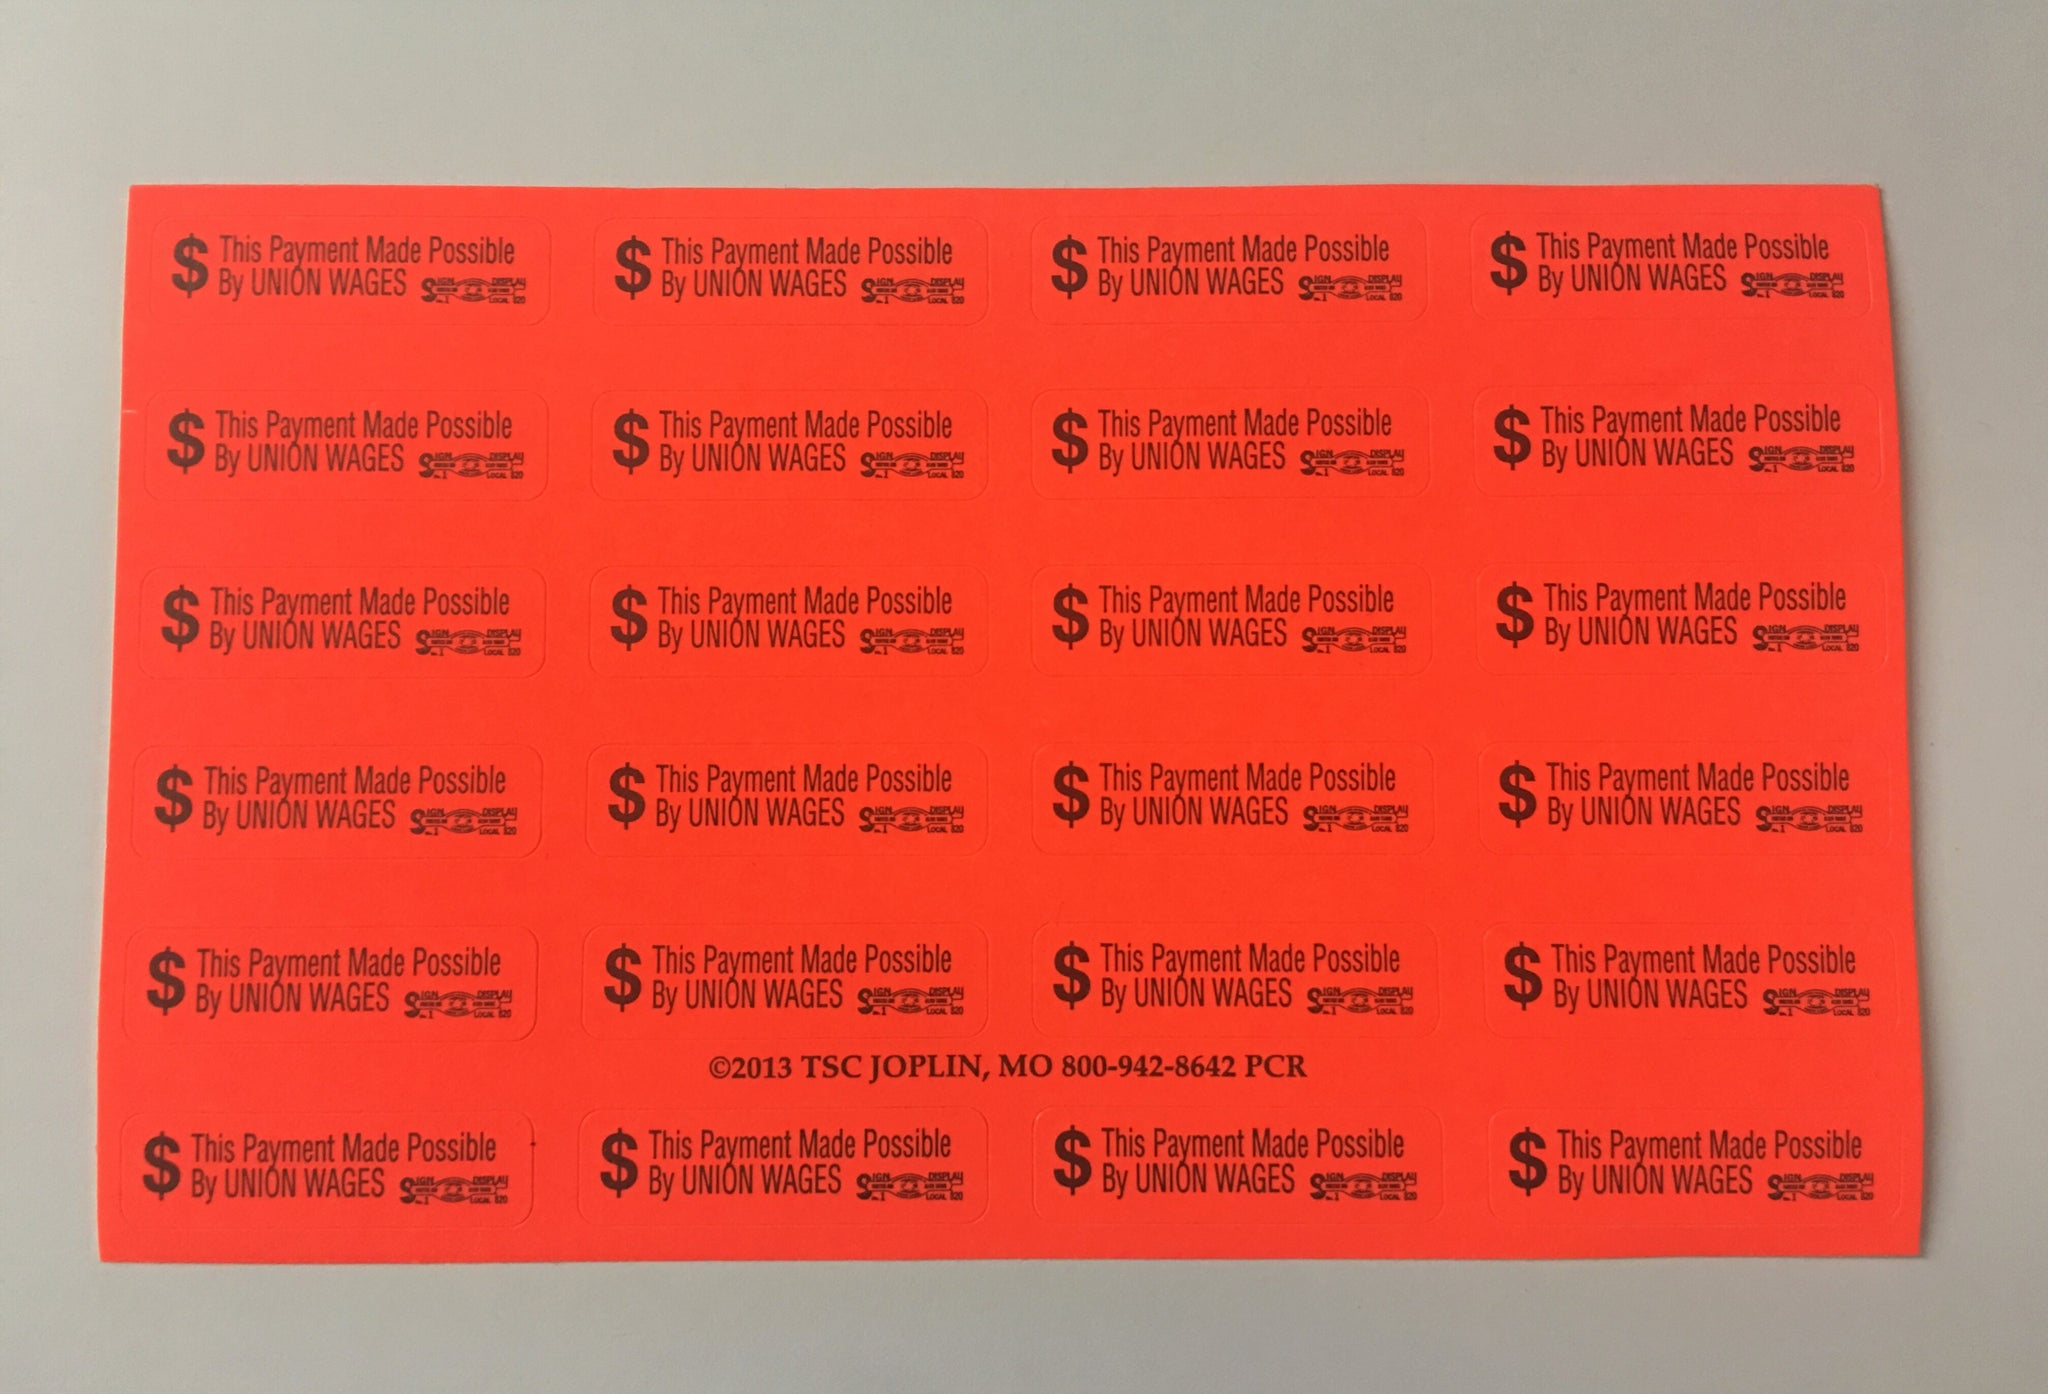 'This Payment Made Possible By UNION WAGES' Envelope Stickers - 3 Pack